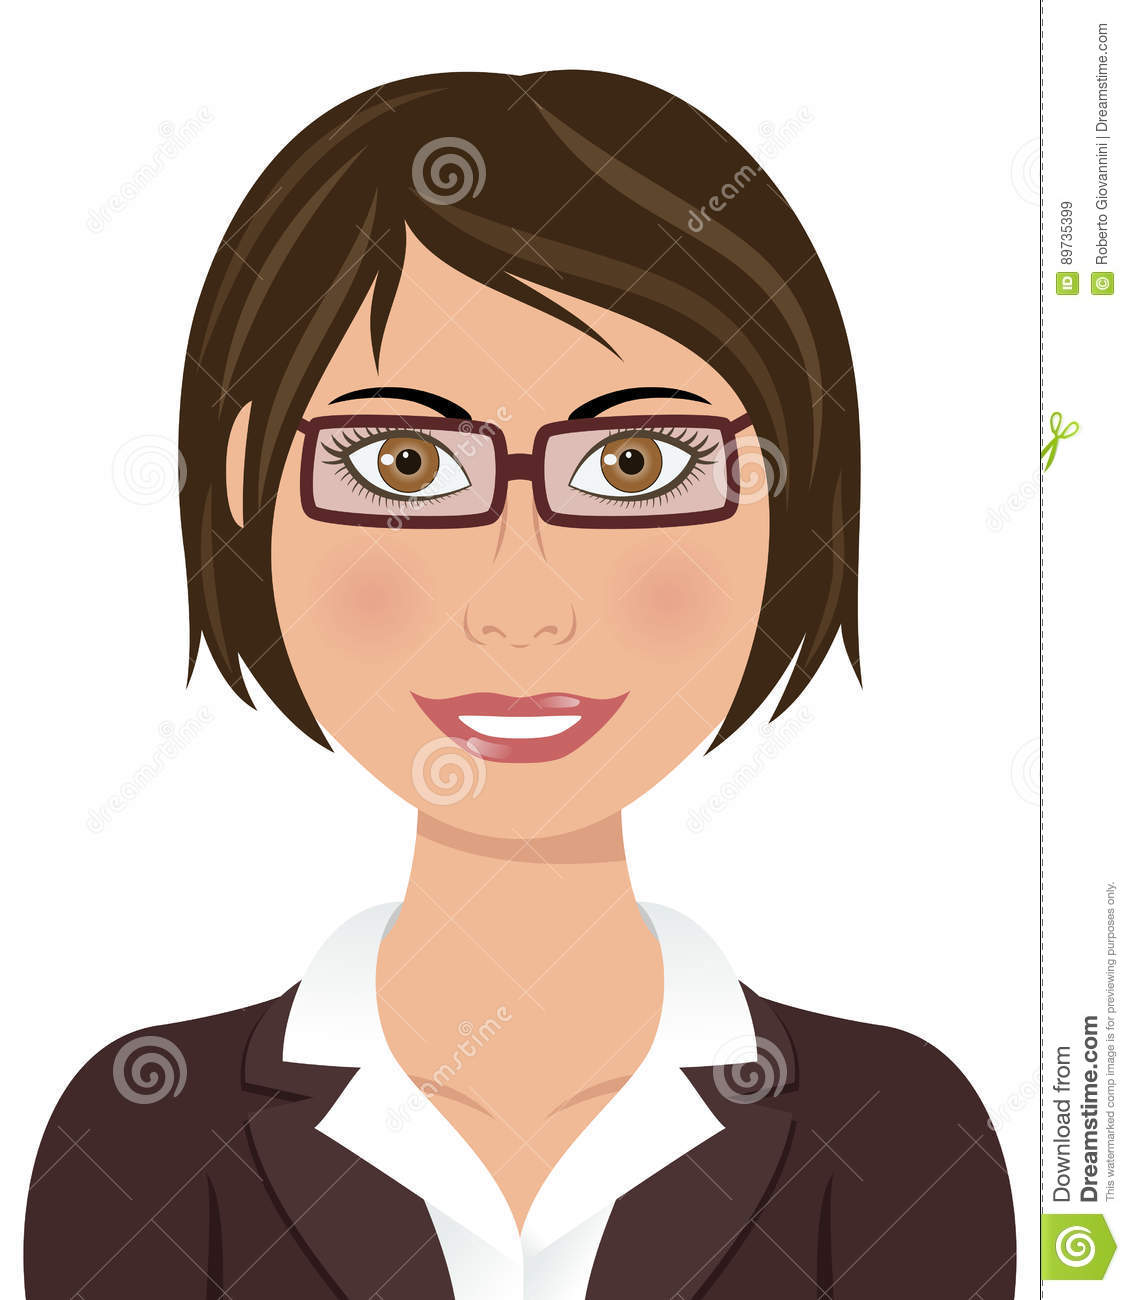 Portrait of a beautiful caucasian business woman smiling with brown hair brown eyes wearing suit and blouse with brown glasses isolated on white